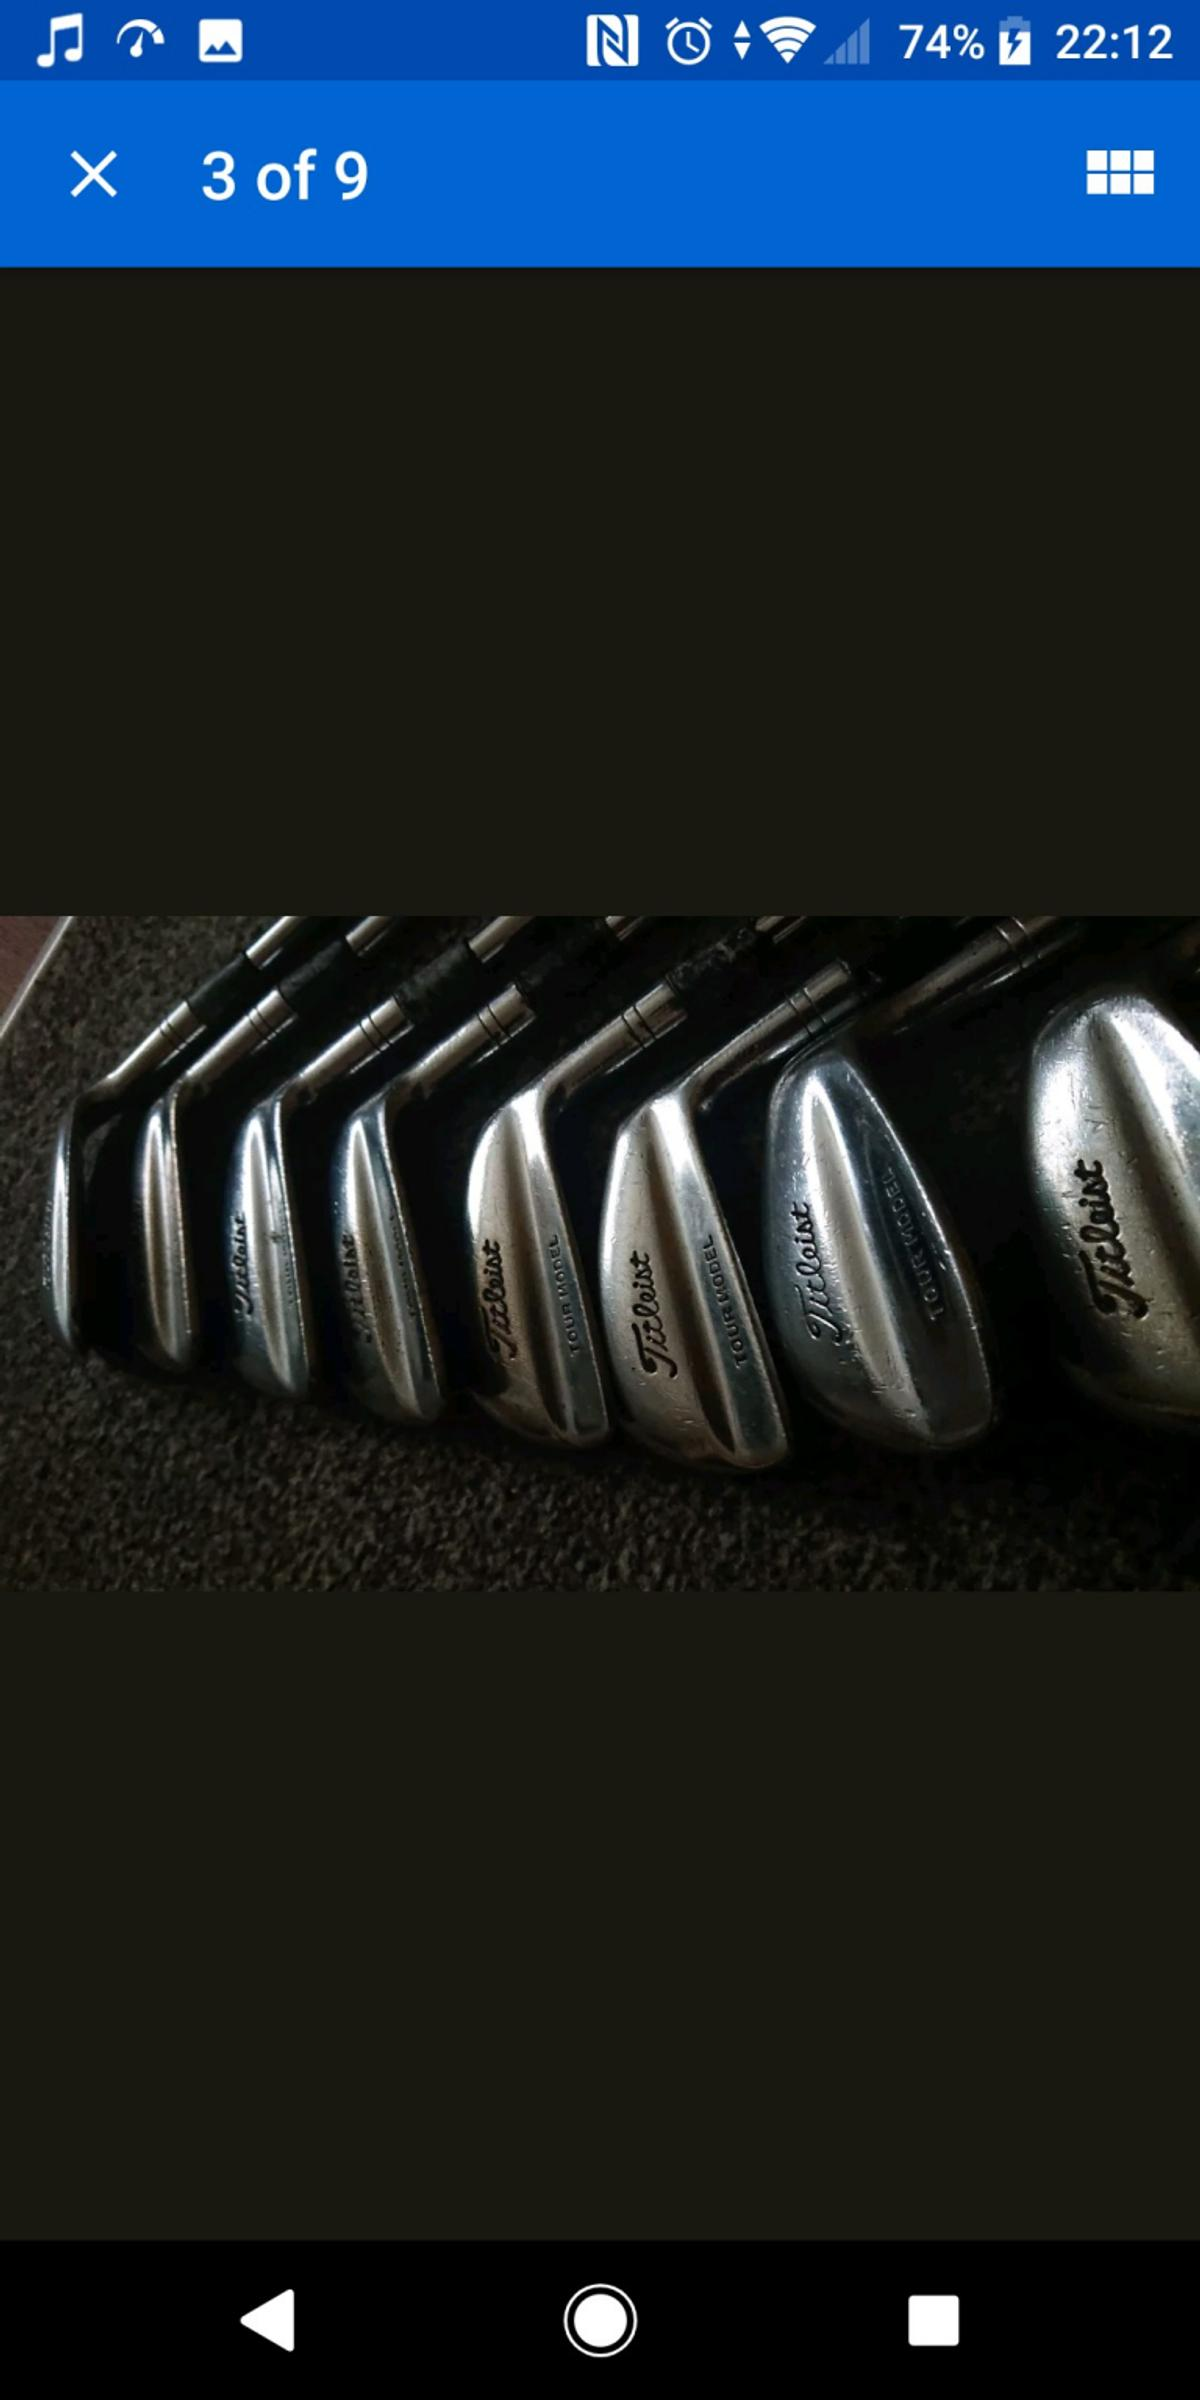 Titleist Tour Model Irons (3-PW) in WR2 Worcester for £120 00 for